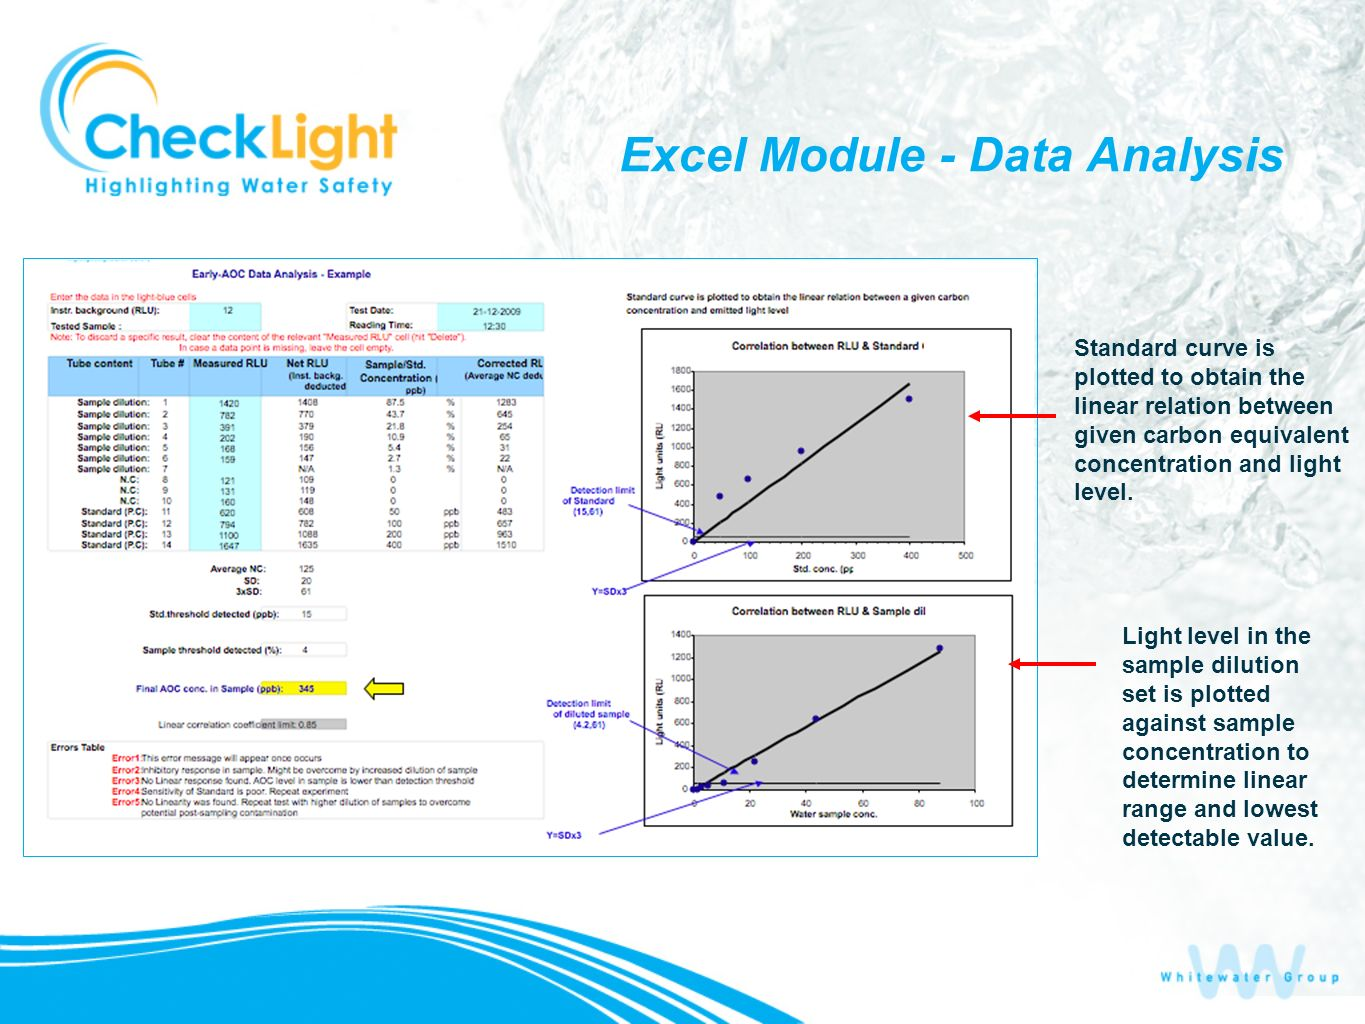 Excel Module - Data Analysis